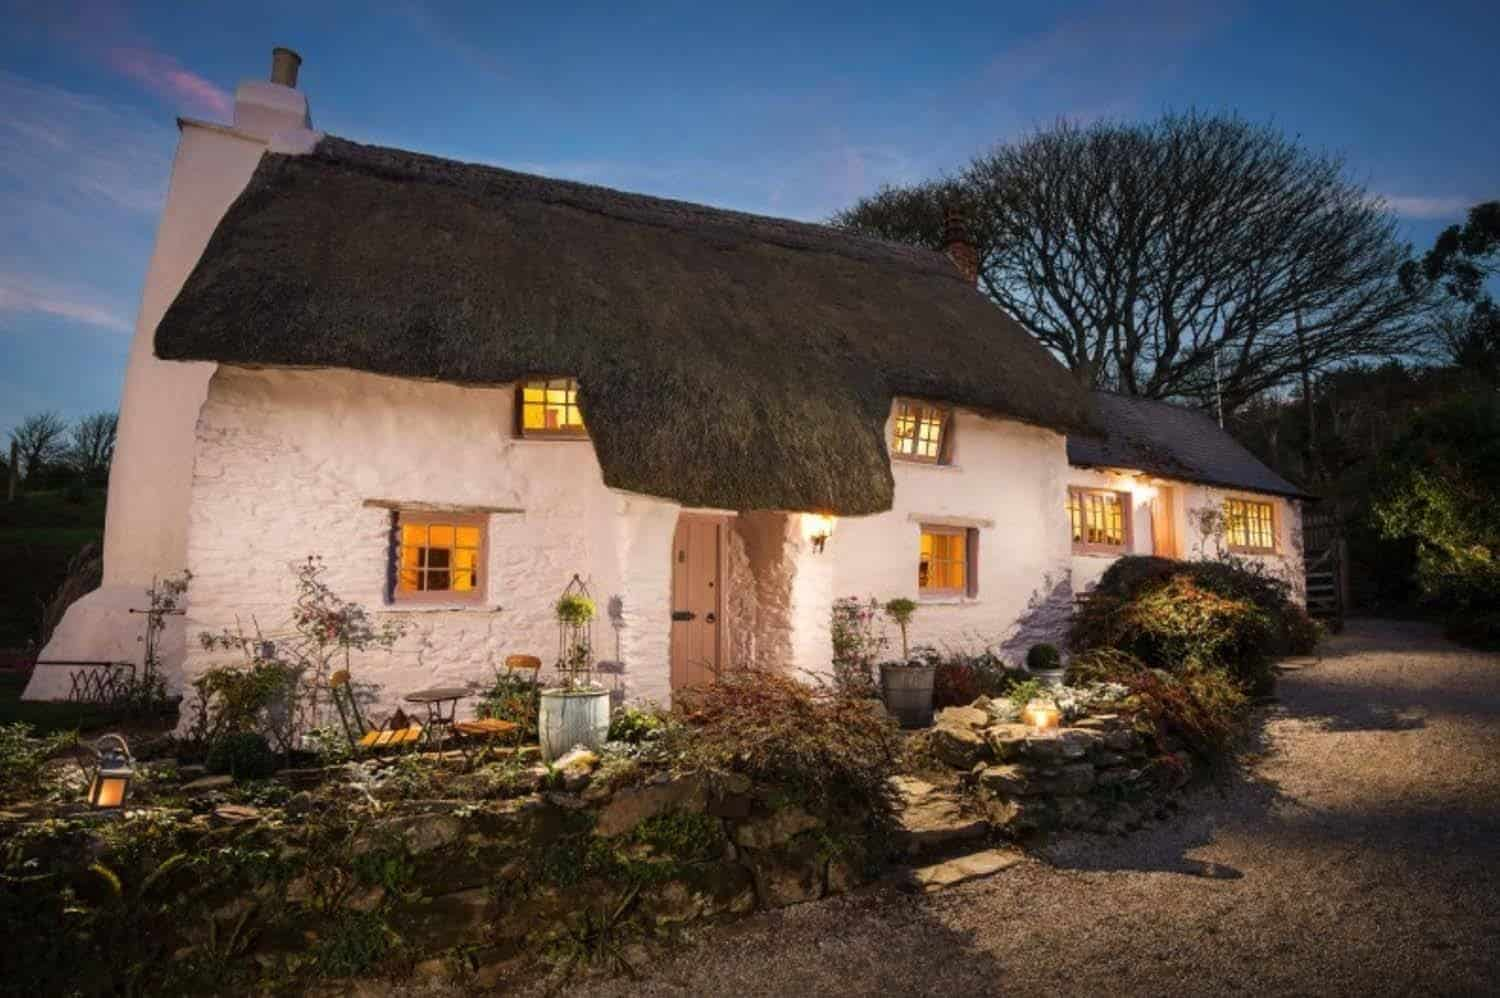 garden cornwall alternative cottages holiday lakes in meadow edit